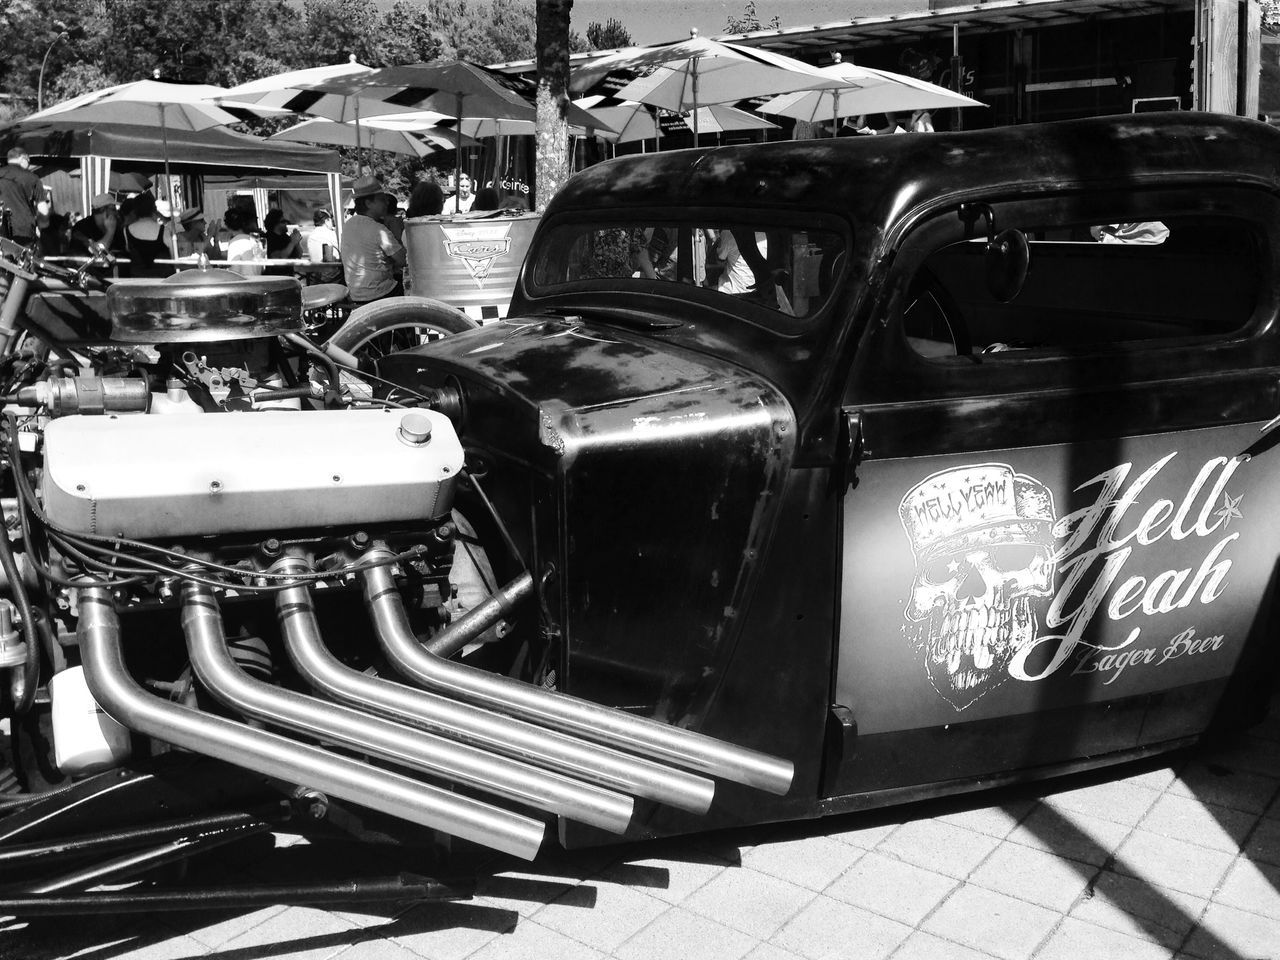 PF's Hot Rod Biertempel Classic Car Hot Rod Classic Hot Rods Jail-House US Car US Cars V8 Engine